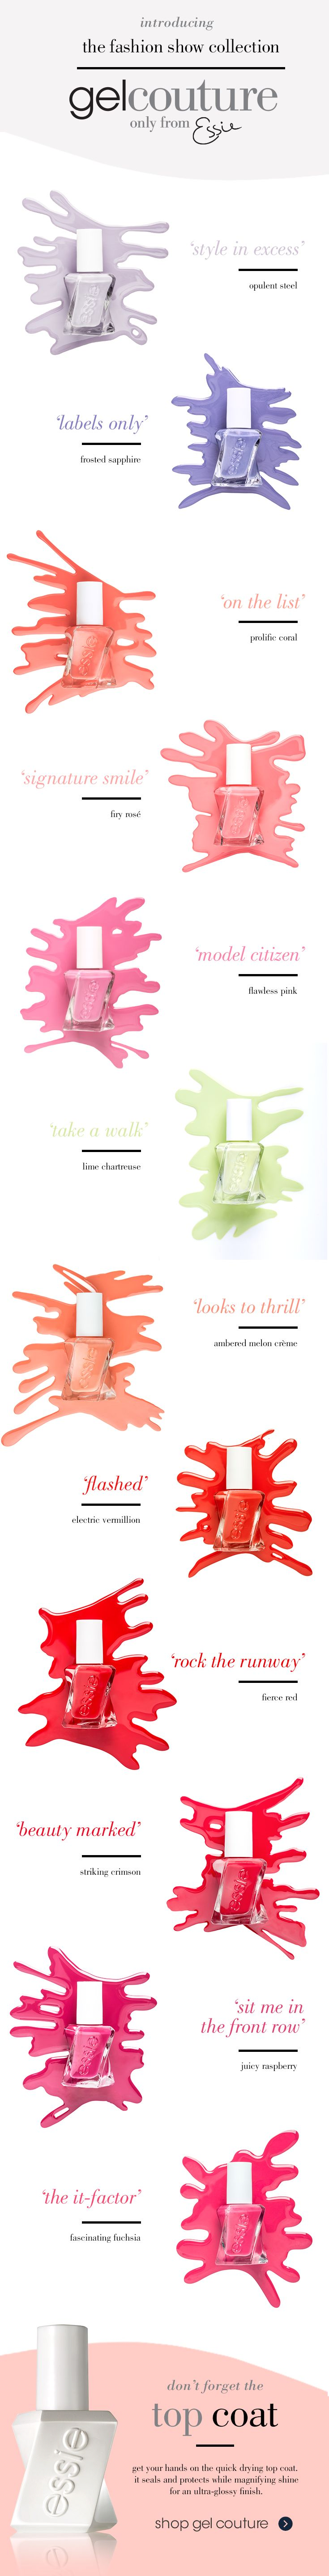 Turn heads on the runway in essie gel couture brights. These entrance makers are brilliantly boundary-pushing and flawlessly fashion-forward. From red-hot crimson nail polish to acid chartreuse, each long-wear shade vividly proclaims your place on couture's fabulous throne.